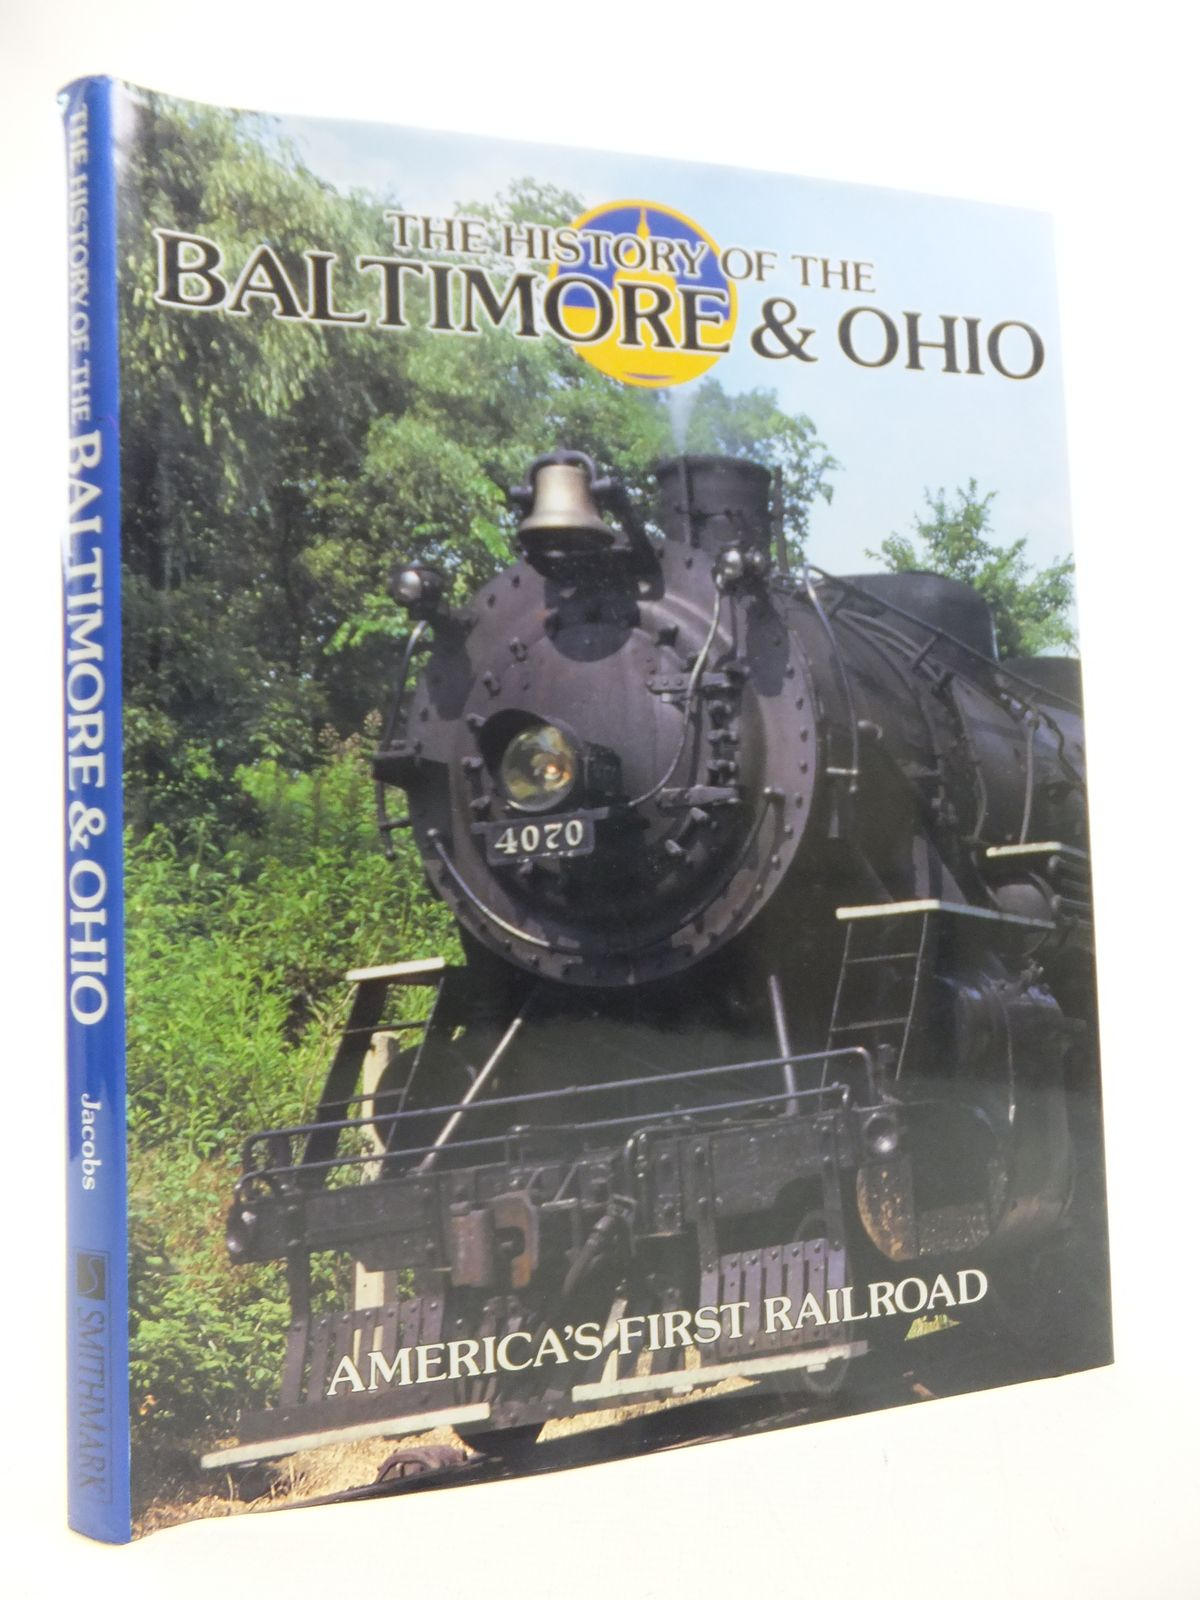 Photo of THE HISTORY OF THE BALTIMORE & OHIO RAILROAD AMERICA'S FIRST RAILROAD written by Jacobs, Timothy published by Smithmark (STOCK CODE: 1811275)  for sale by Stella & Rose's Books